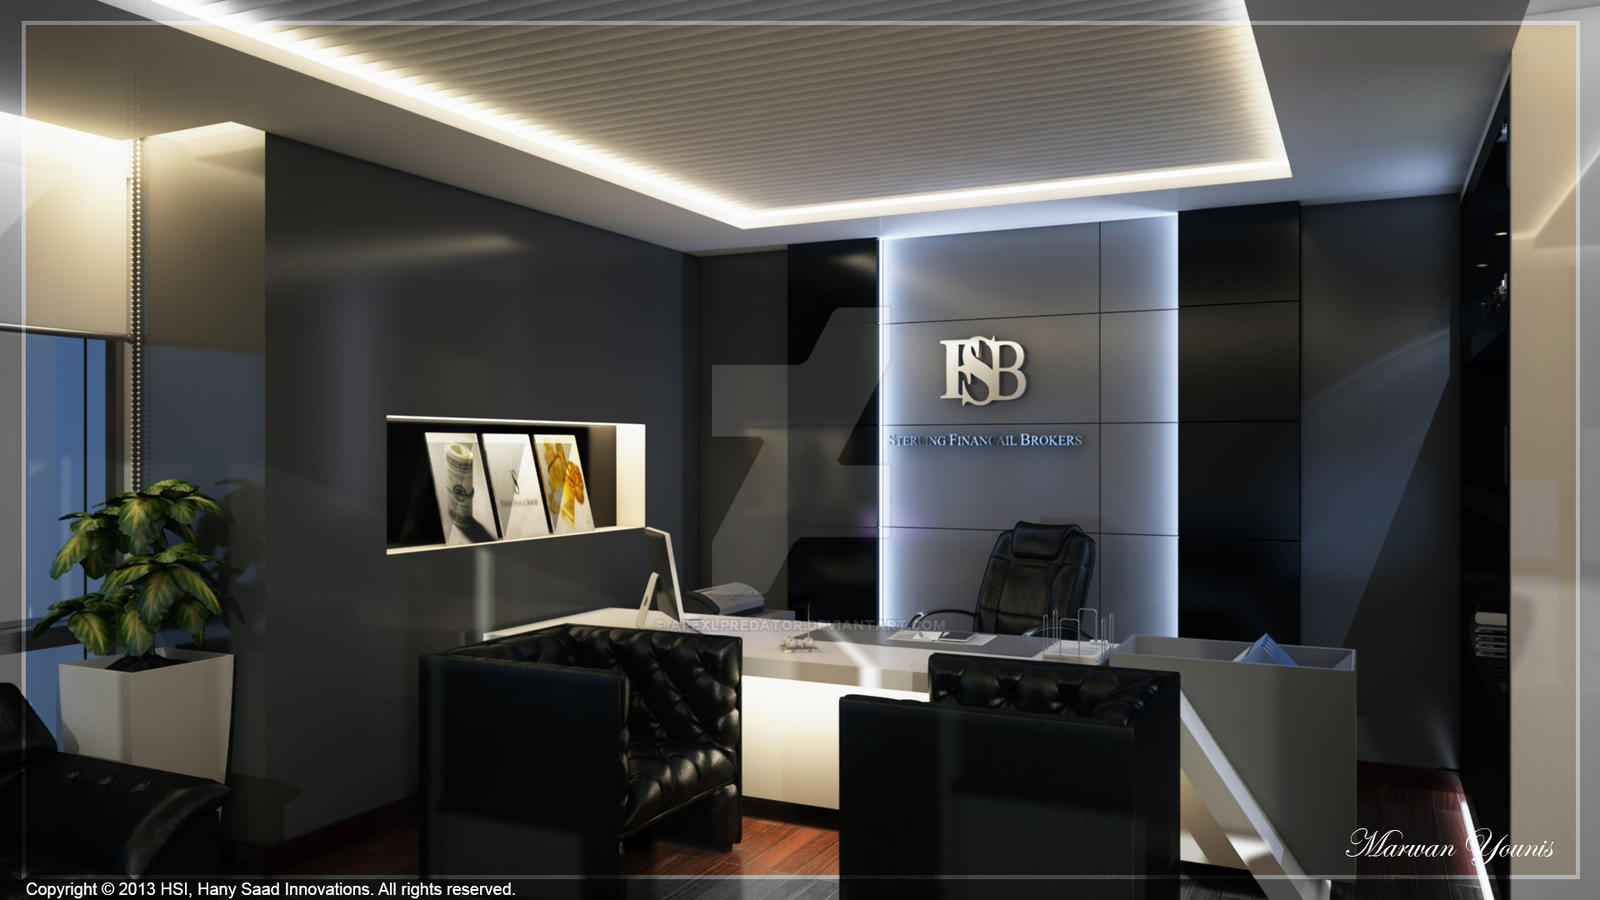 Ceo office 03 by apexlpredator on deviantart for Decor interior design